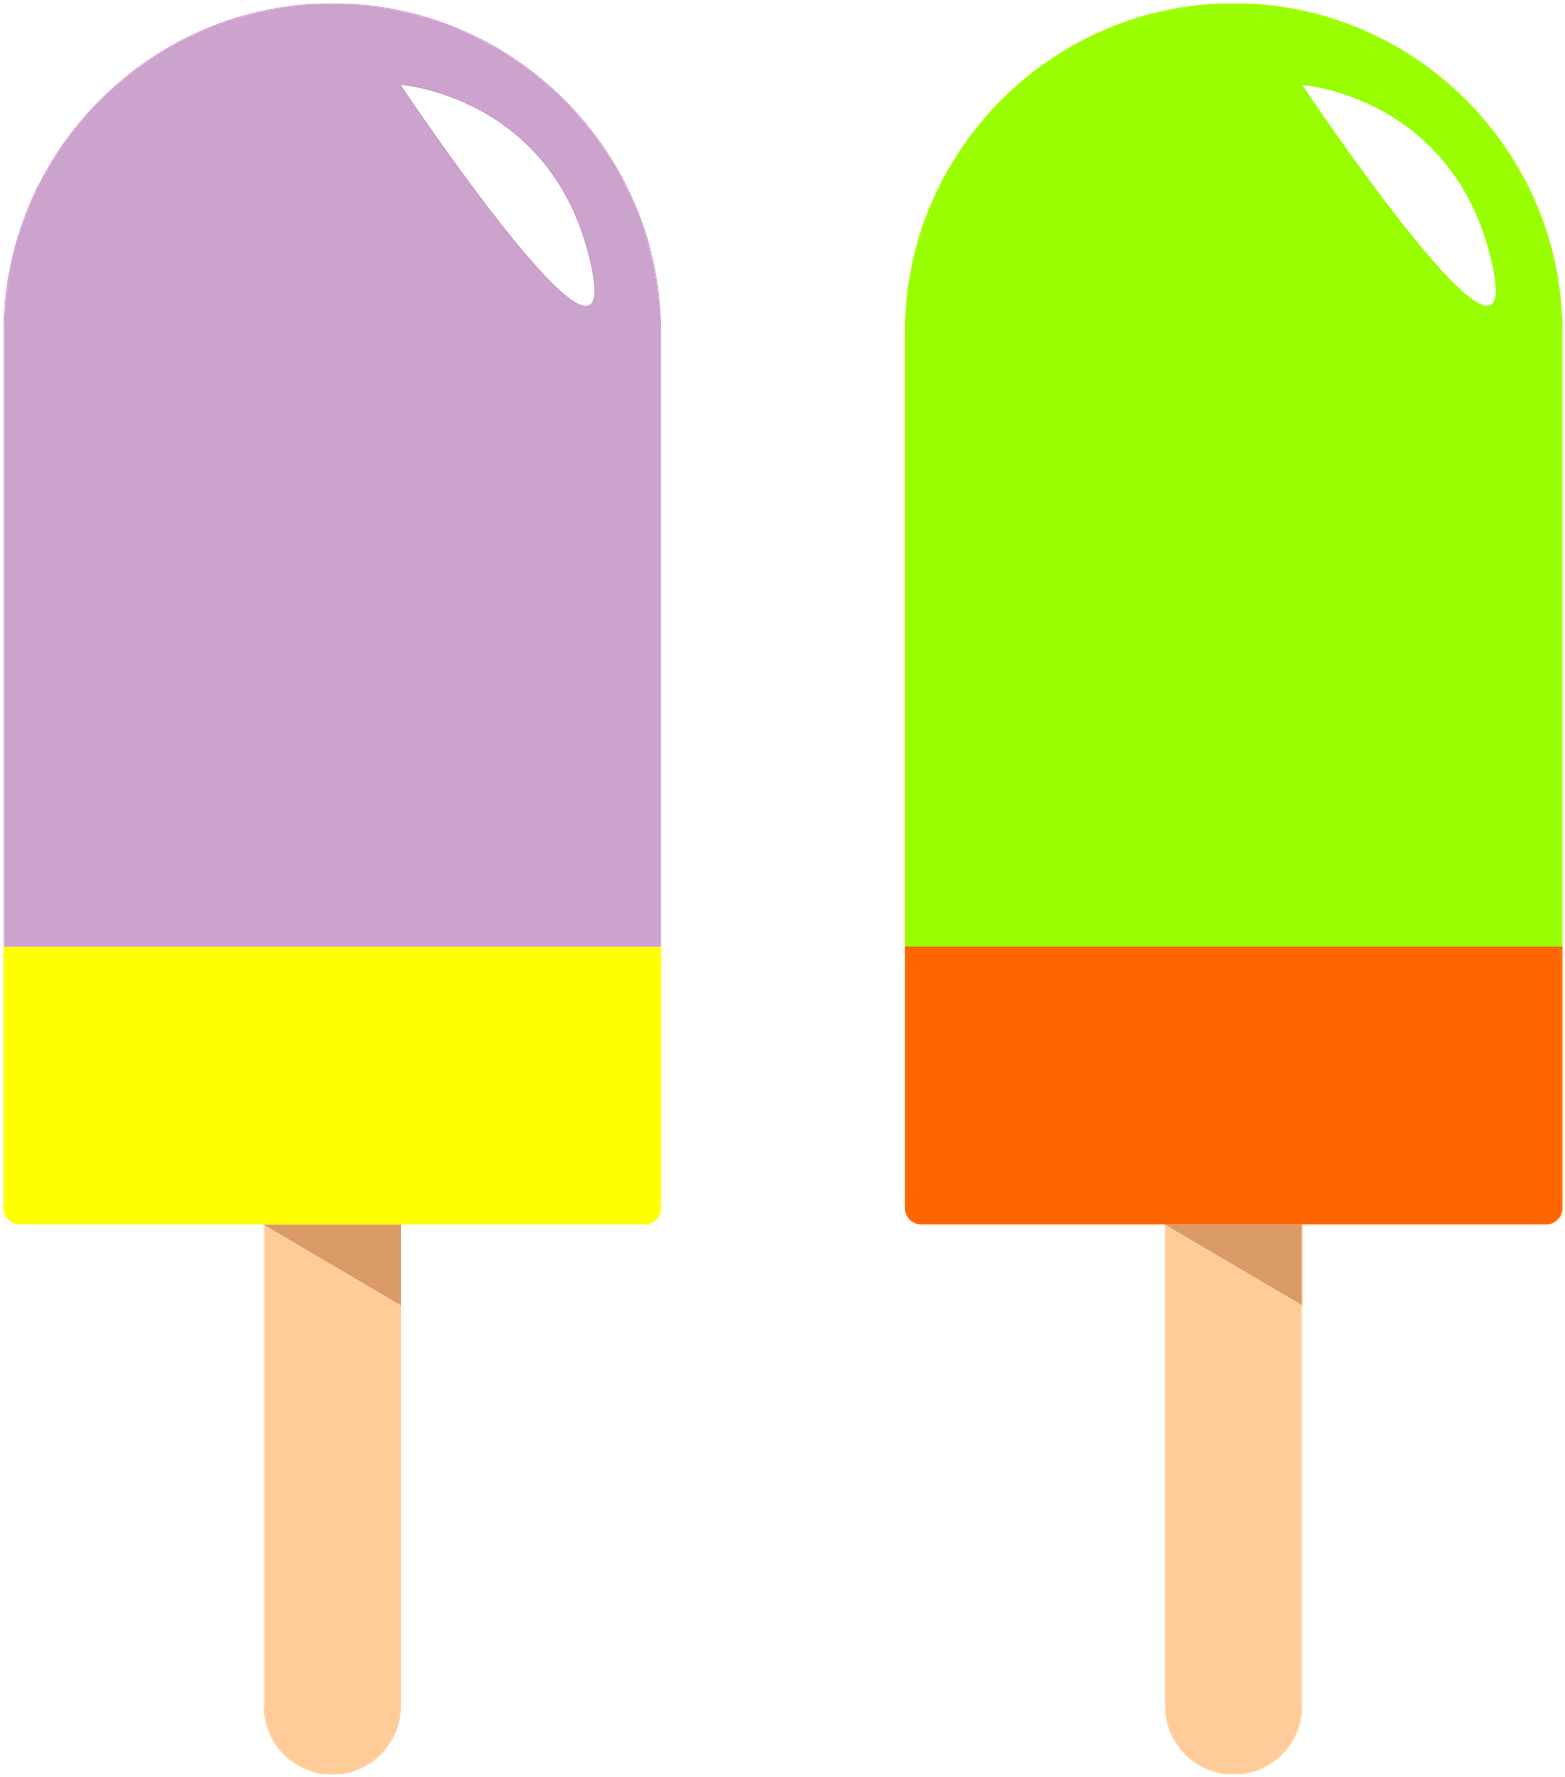 Popsicle Clipart Green.